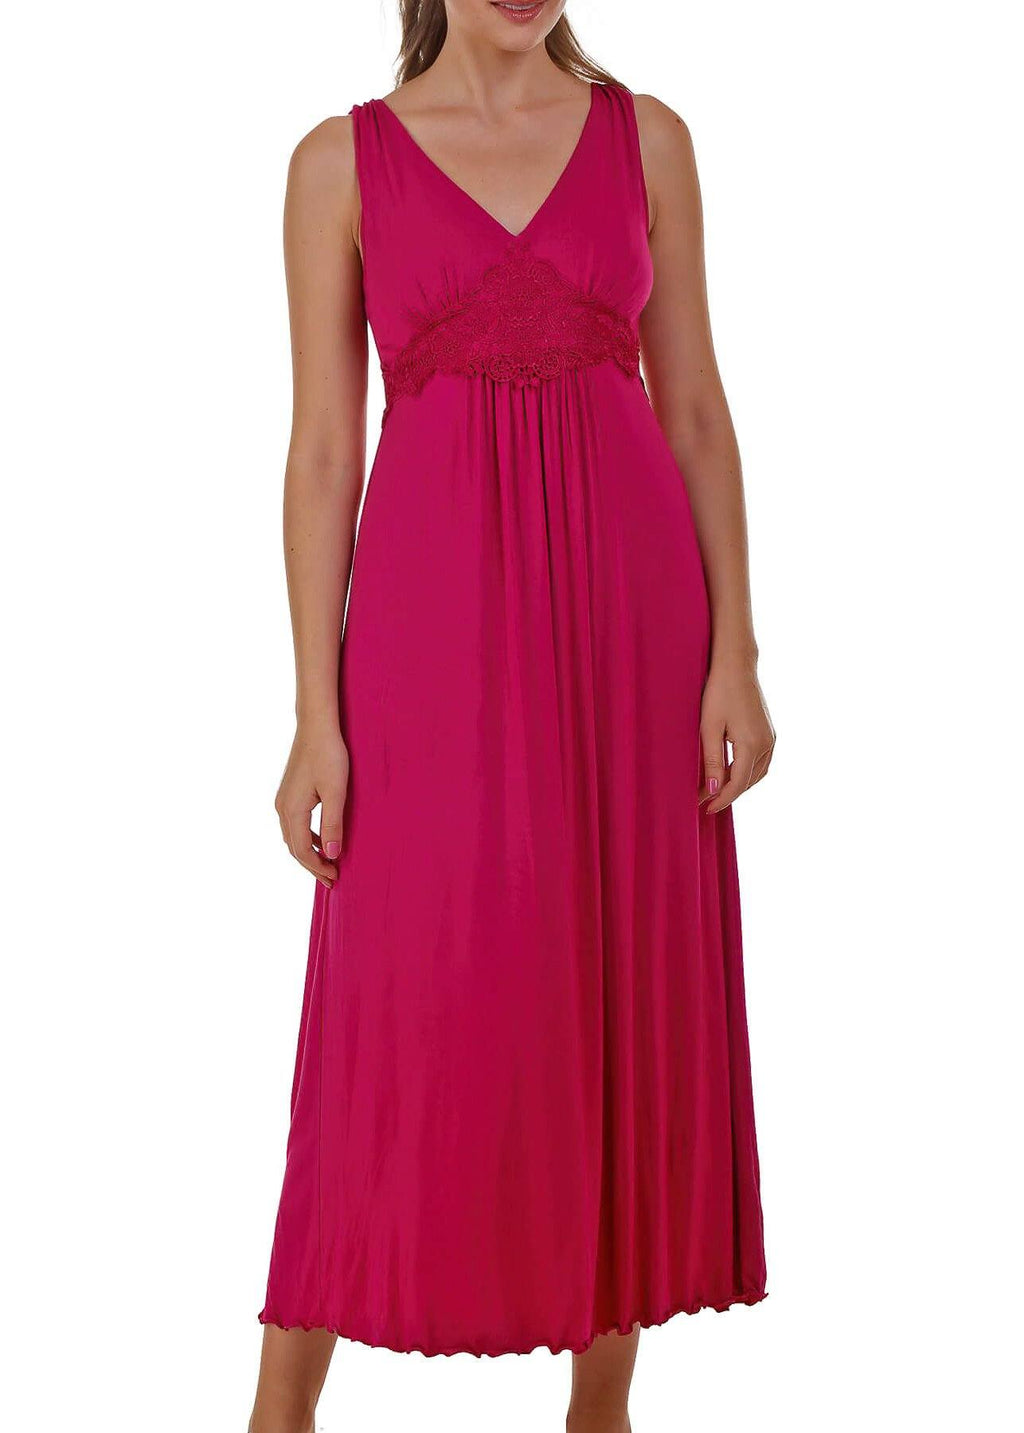 Dreamy Nightgown #34905 in Berry